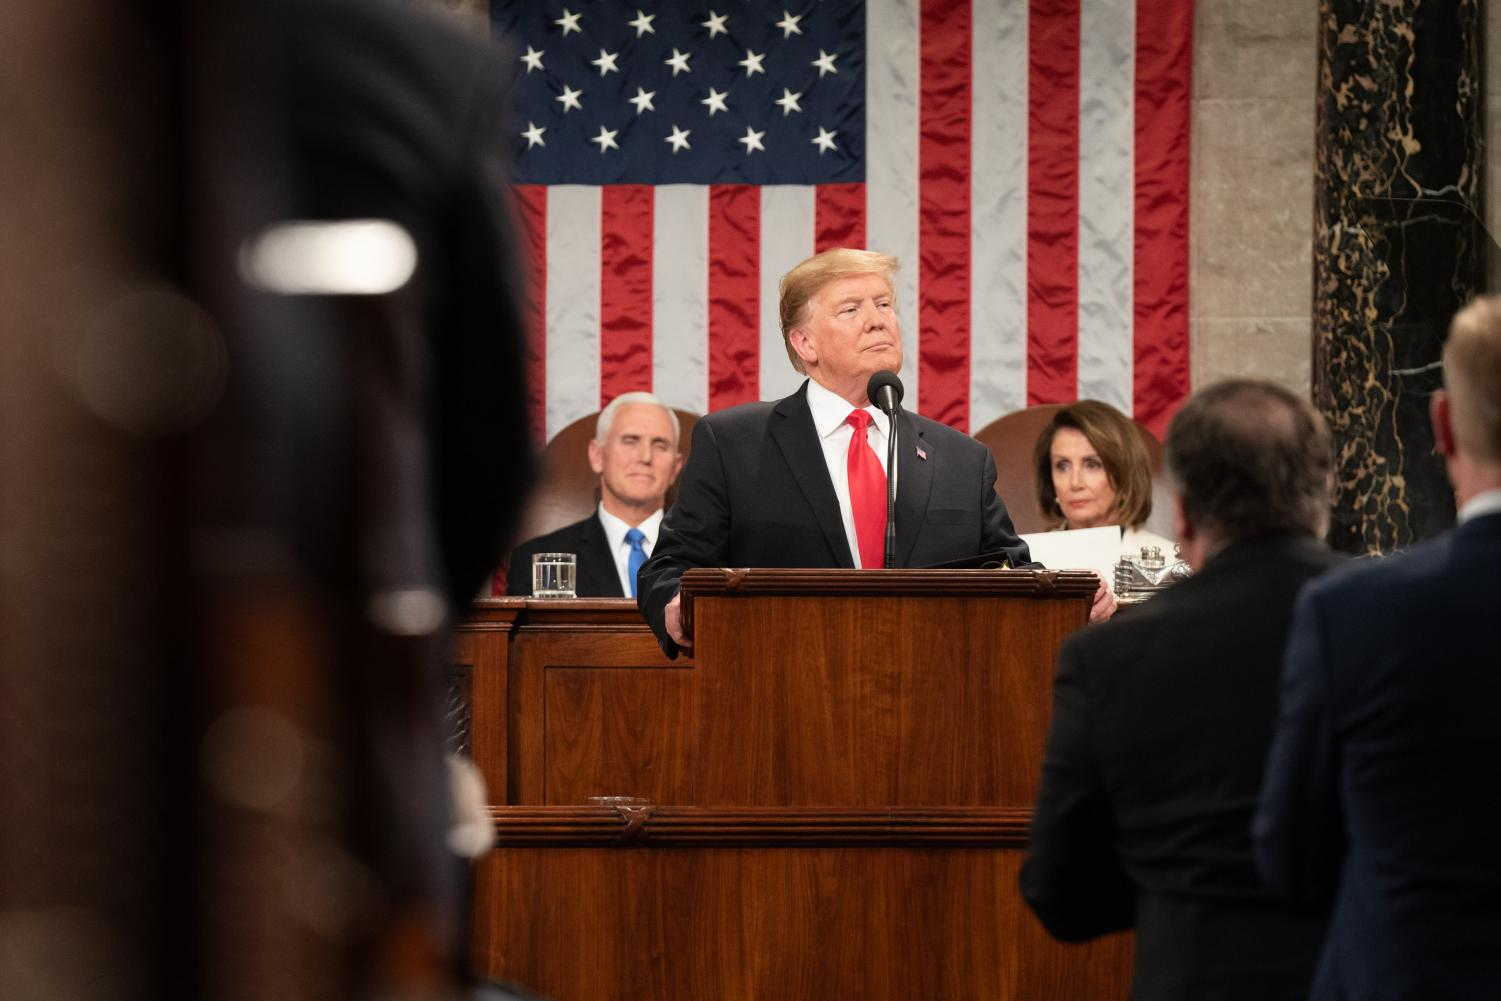 President Donald J. Trump delivers his State of the Union address at the U.S. Capitol, Tuesday, Feb. 5, 2019, in Washington, D.C.